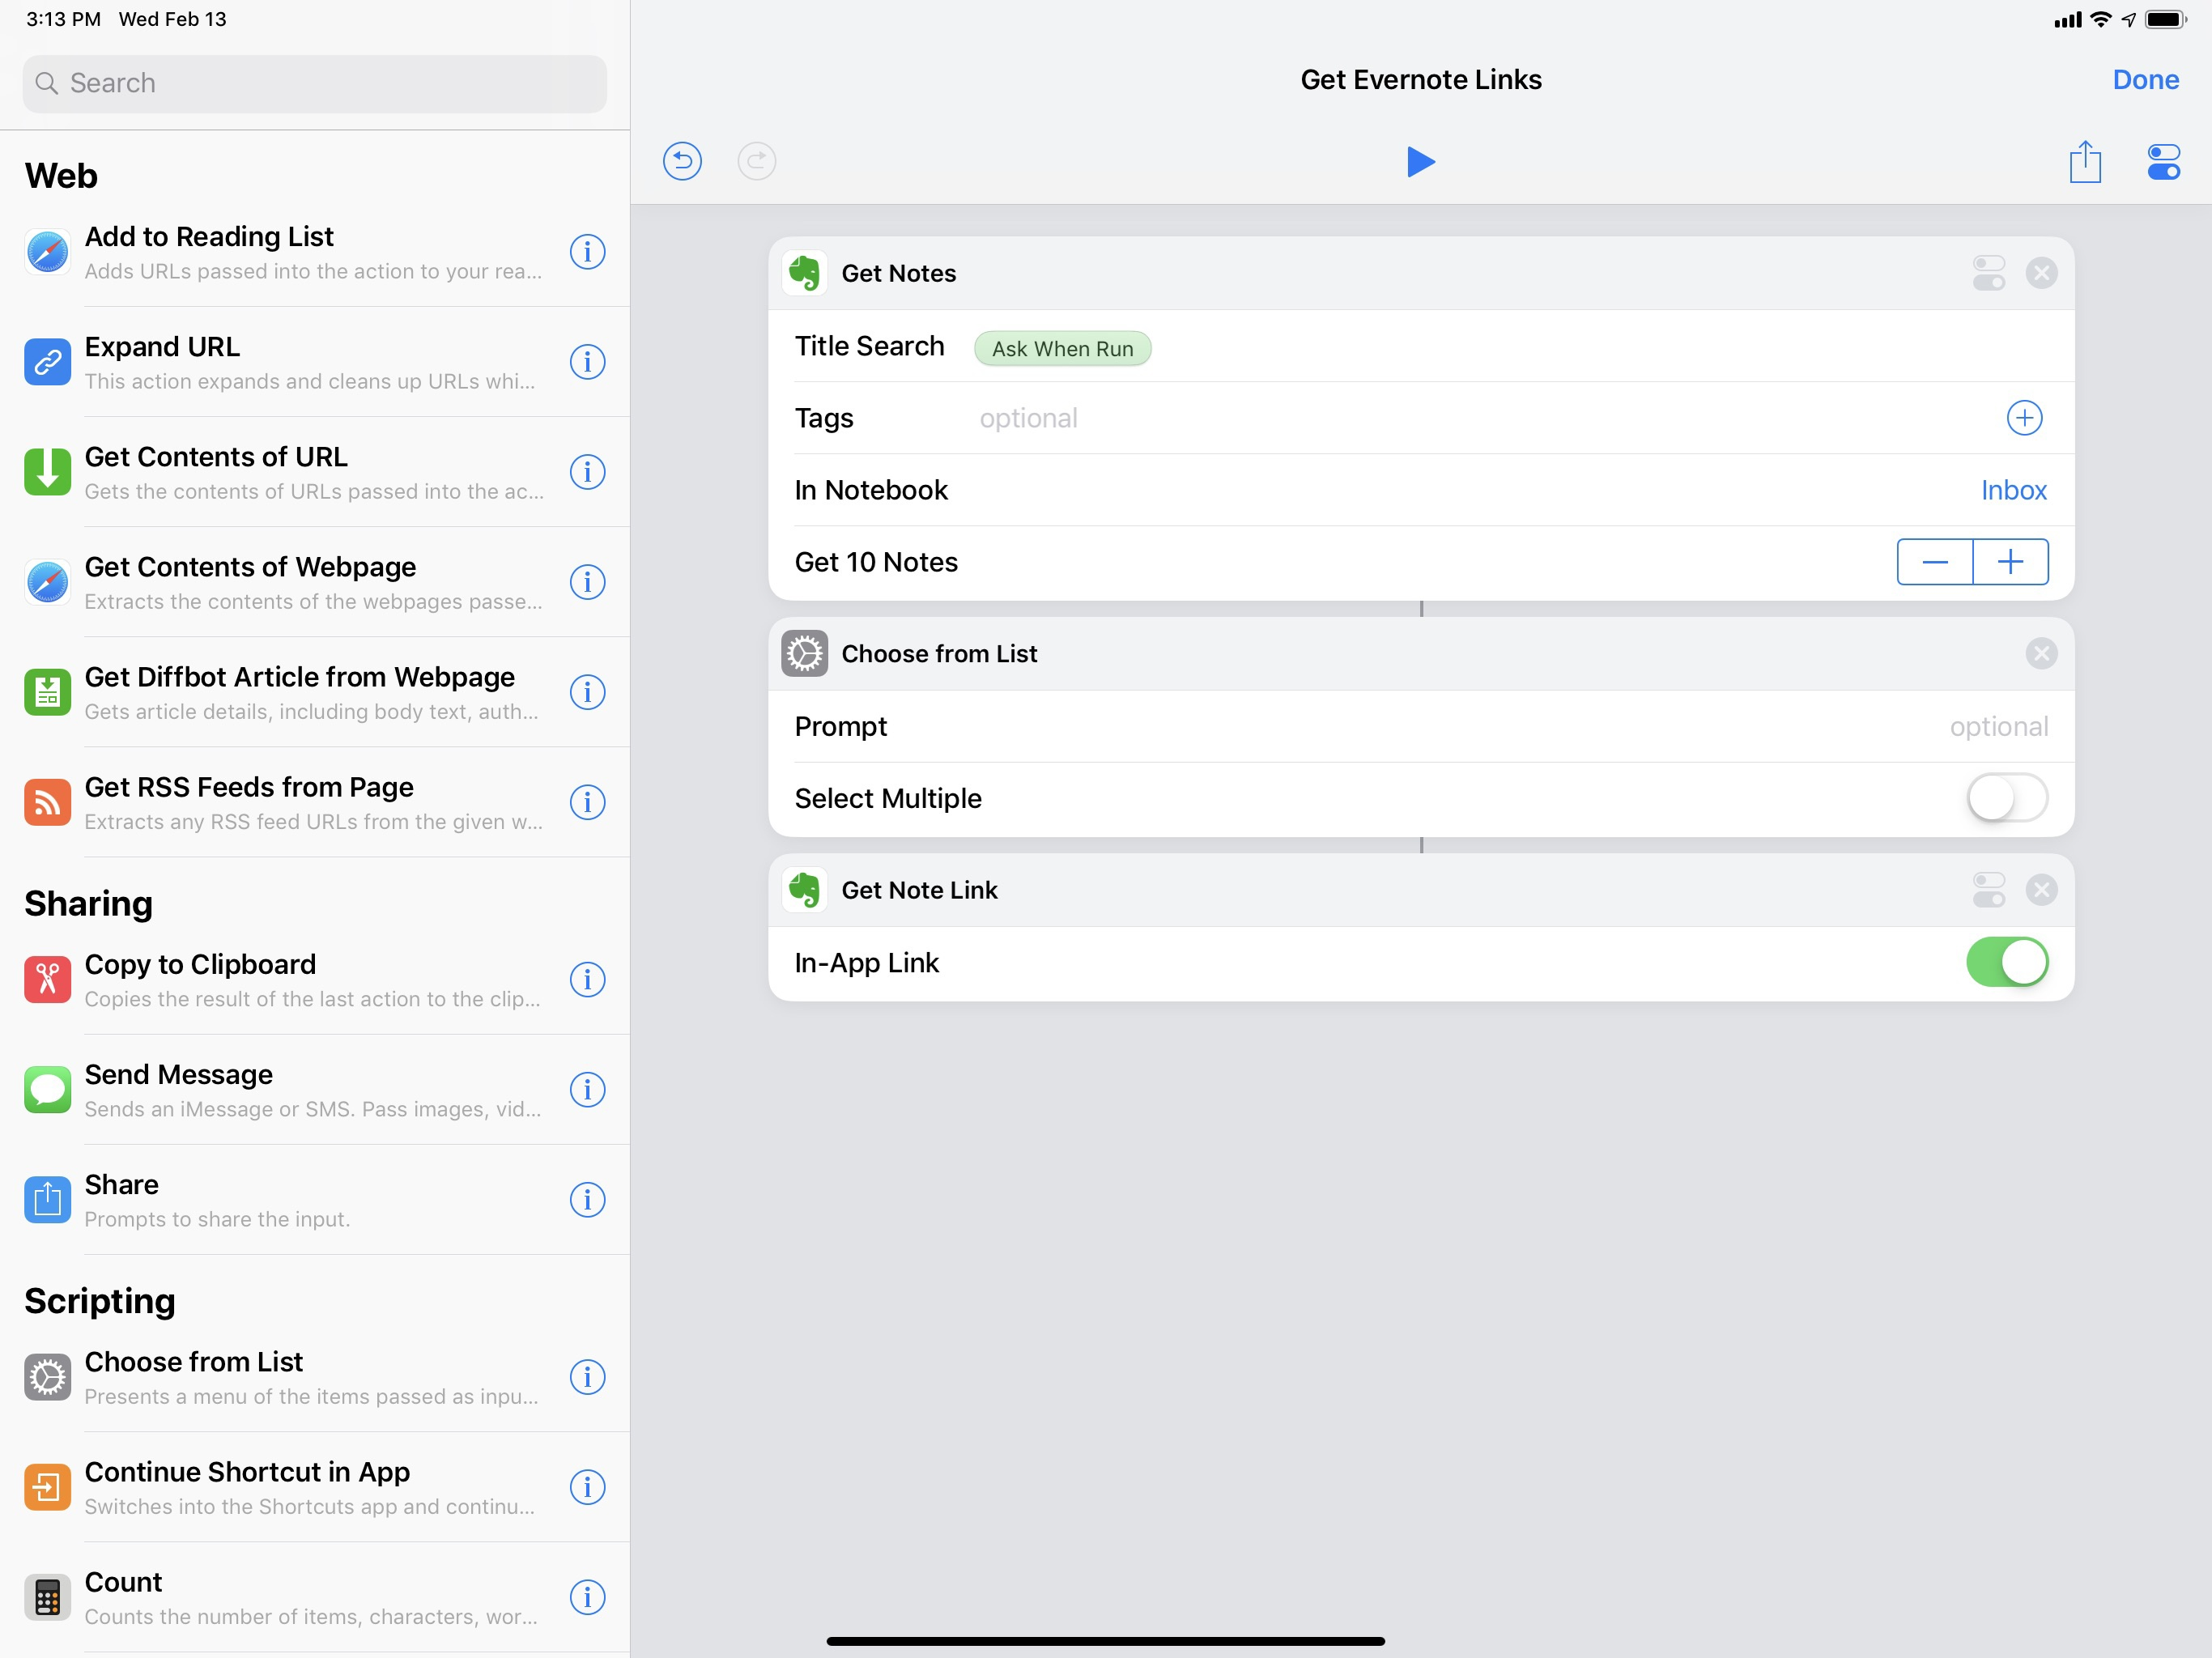 With three actions, you can build a shortcut that searches your Evernote account for specific notes.